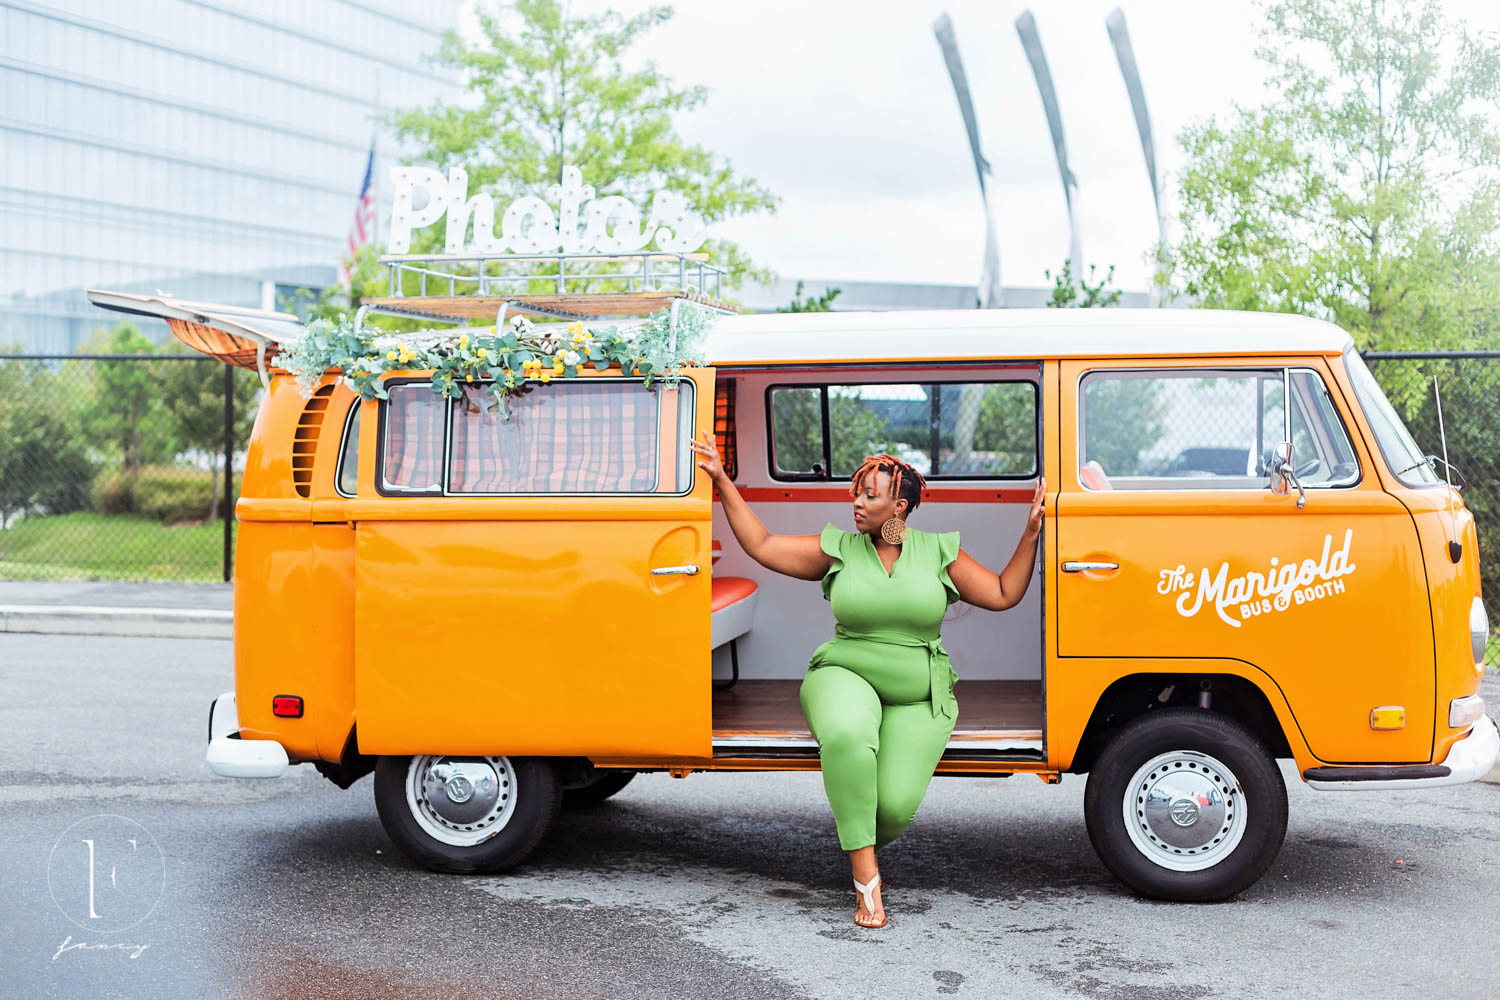 marigold-bus-photobooth-hustle-in-heels-conference-photography-fancy-boudoir-mgm-national-harbor-columbia